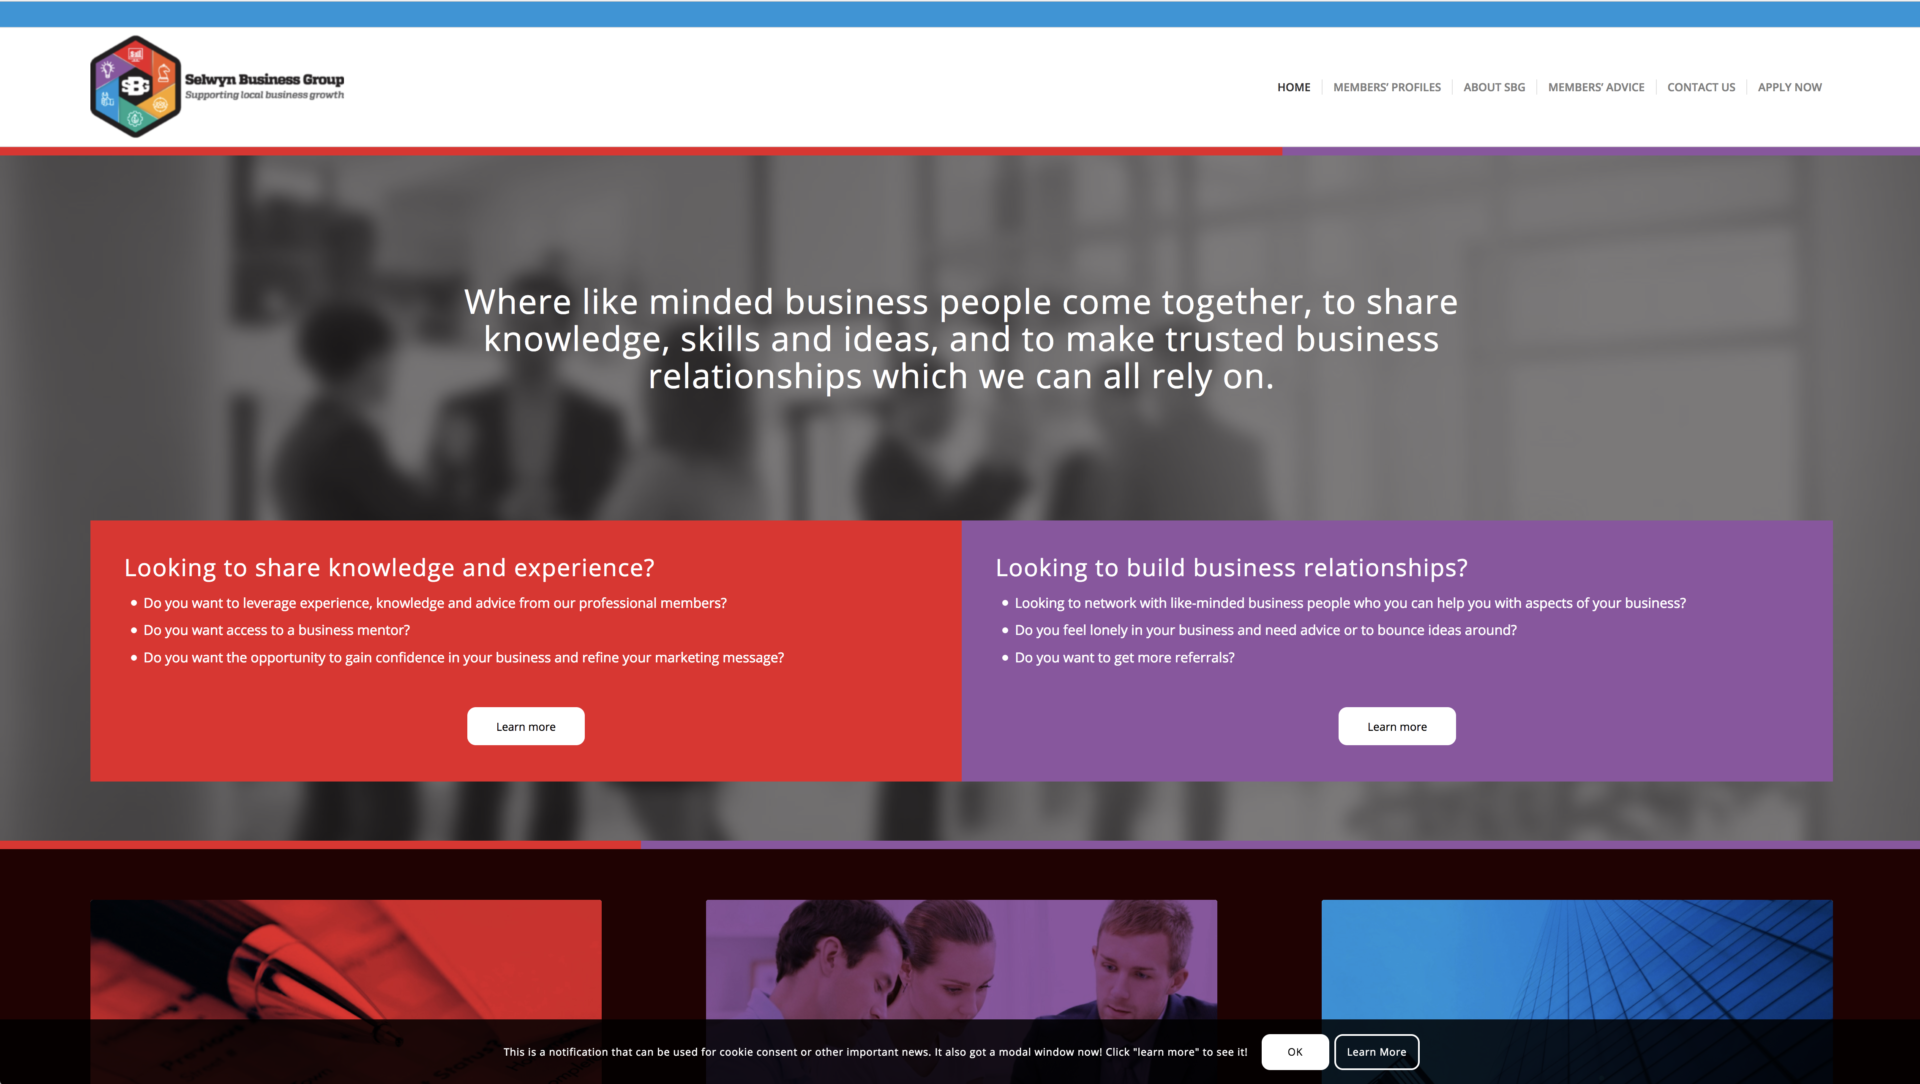 Selwyn Business Group (SBG) New Zealand website design and development with bold colours symbolizing a variety of business types and categories in our local business networking group